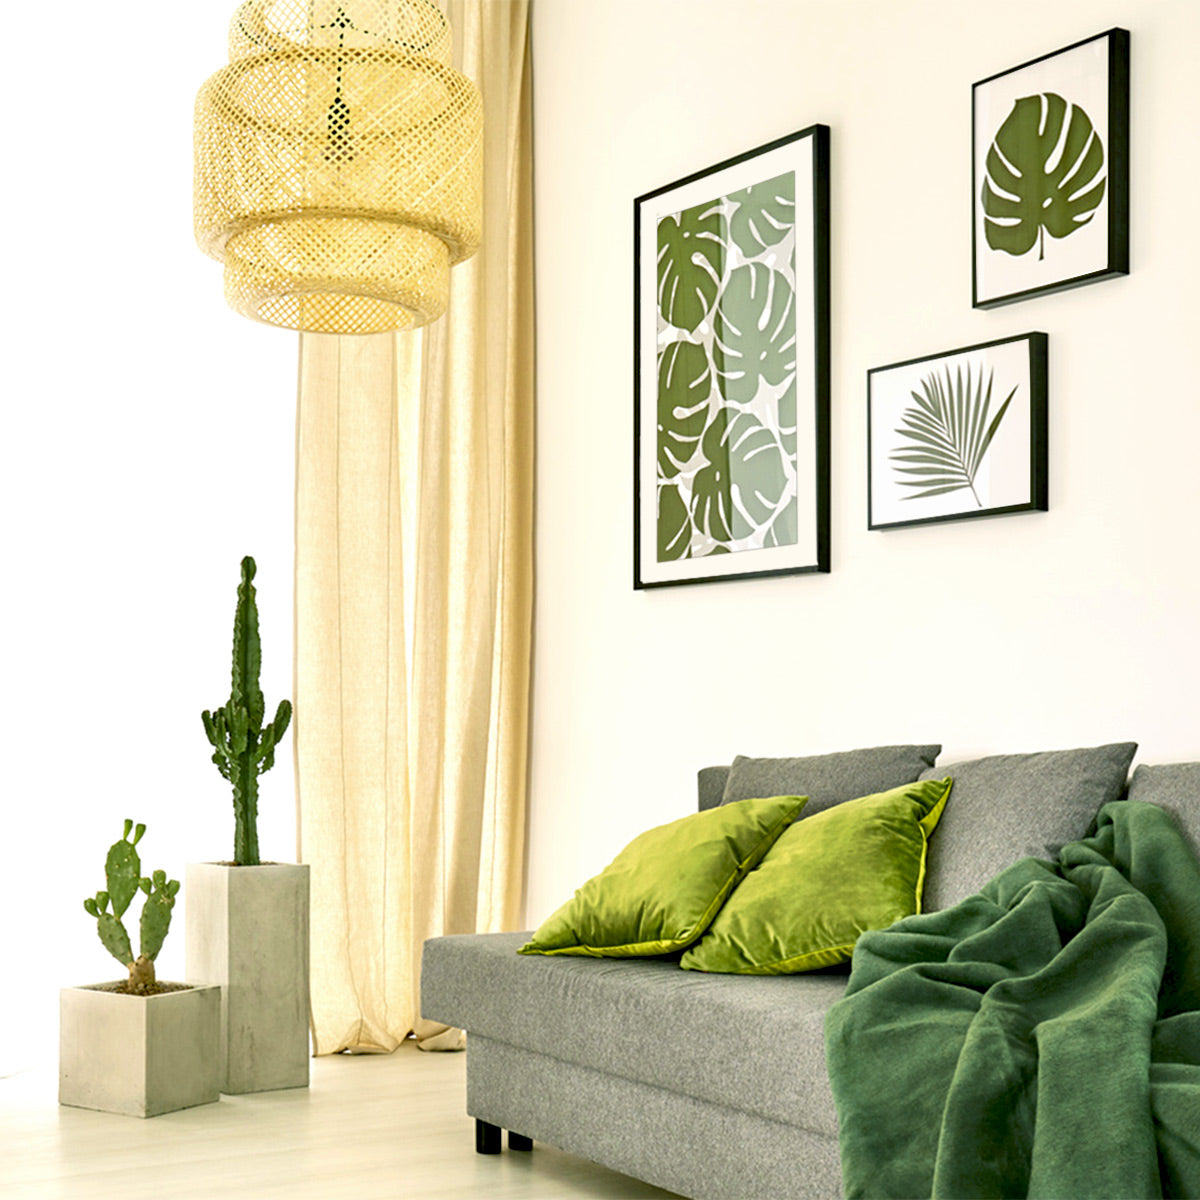 Decorating with greenery and Posterjack photo art prints - interior design tips